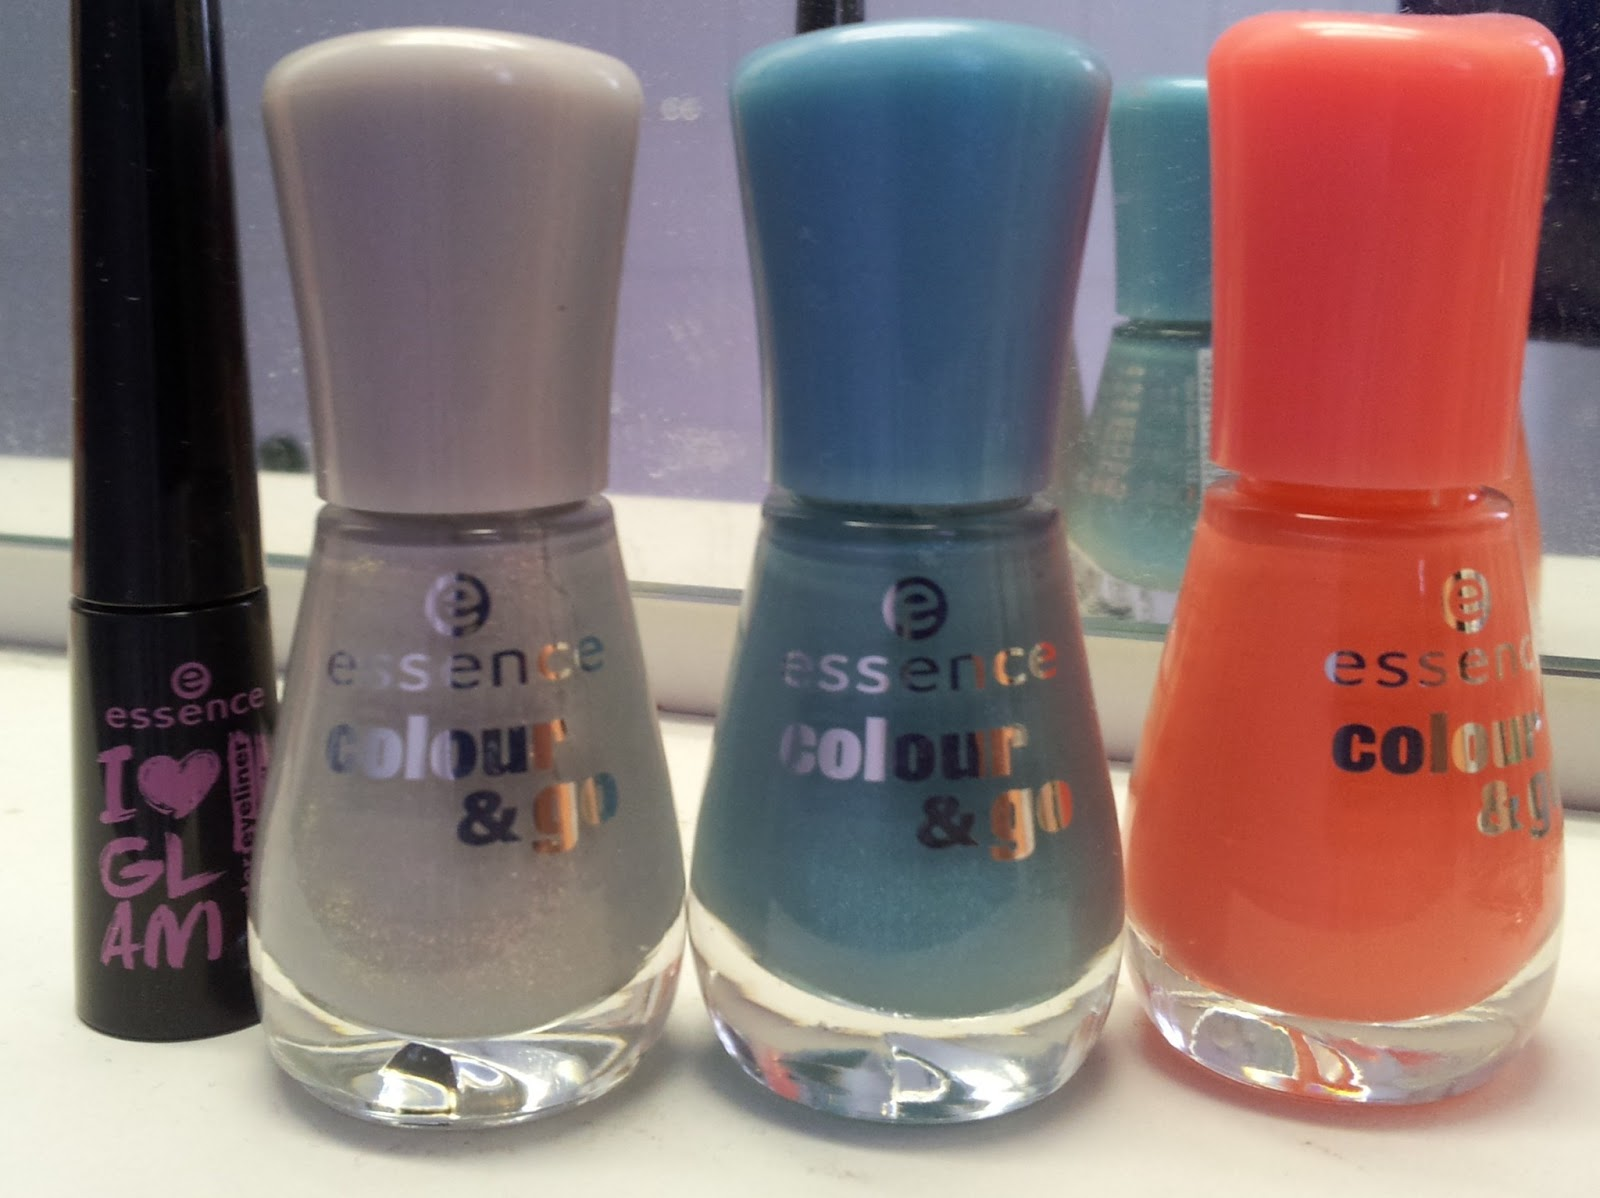 essence Colour&Go Off to miami, Grey-t to be here, I love bad boys